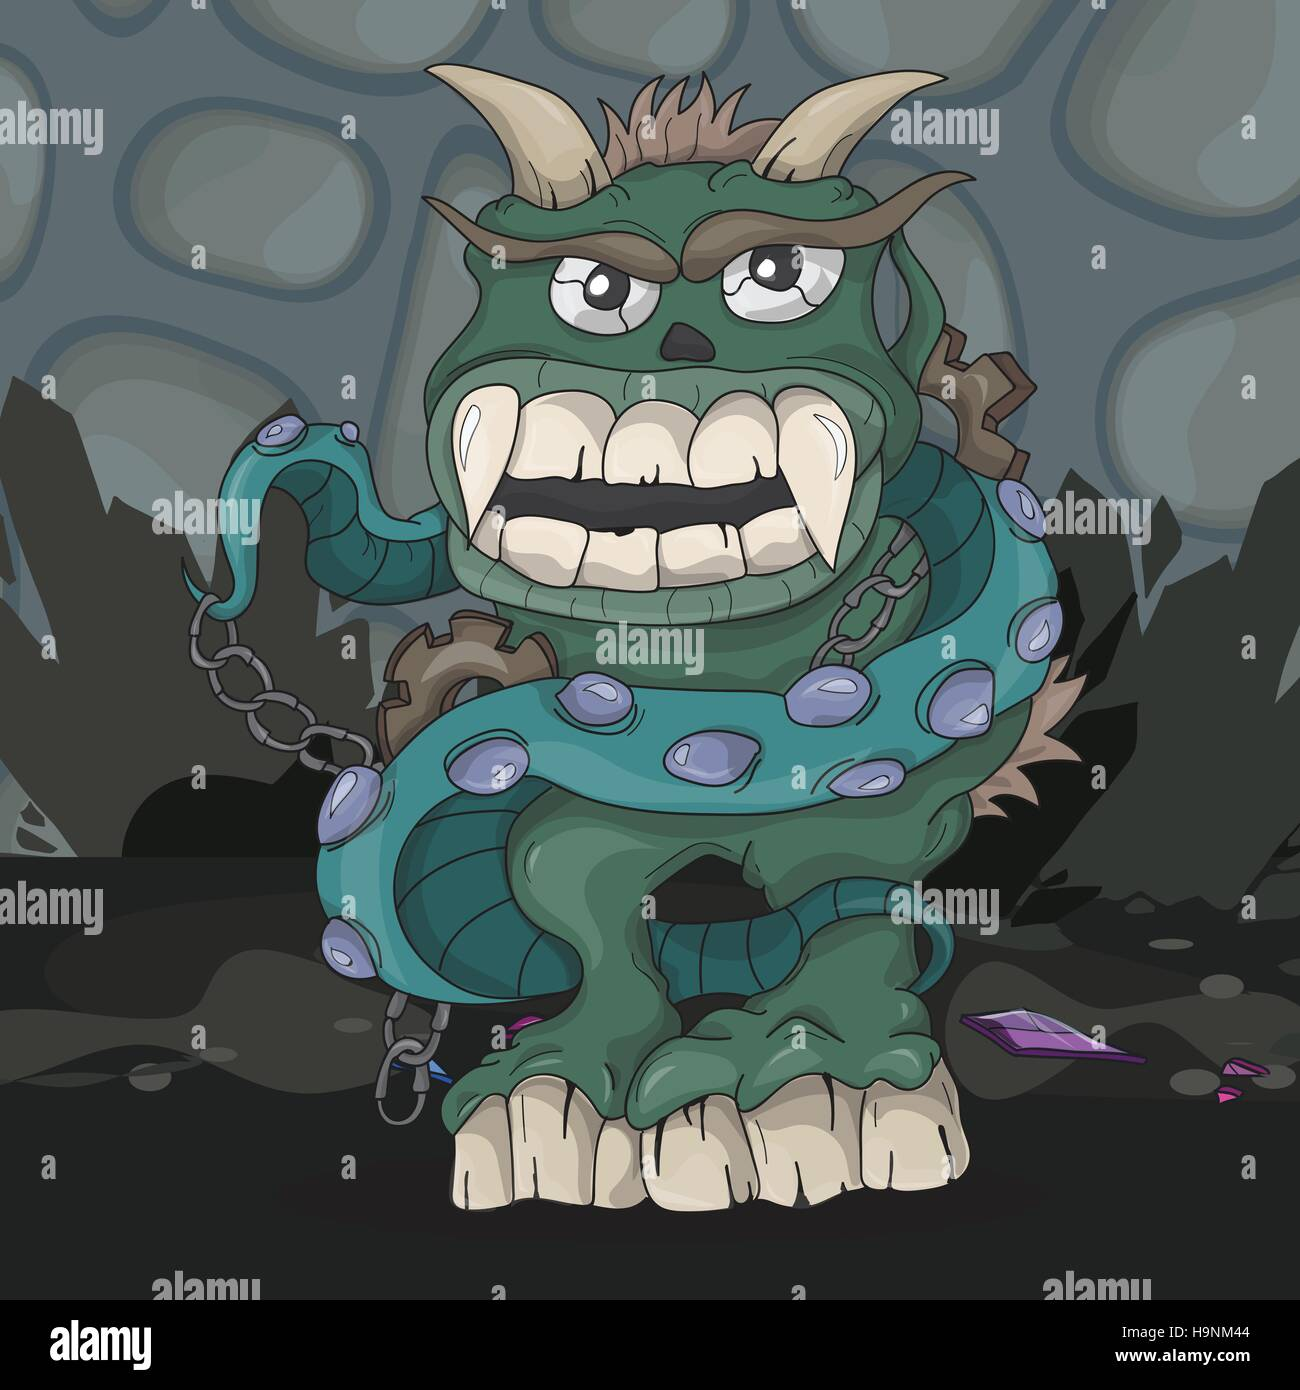 Angry cartoon dark monster underground -Vector illustration - Stock Image